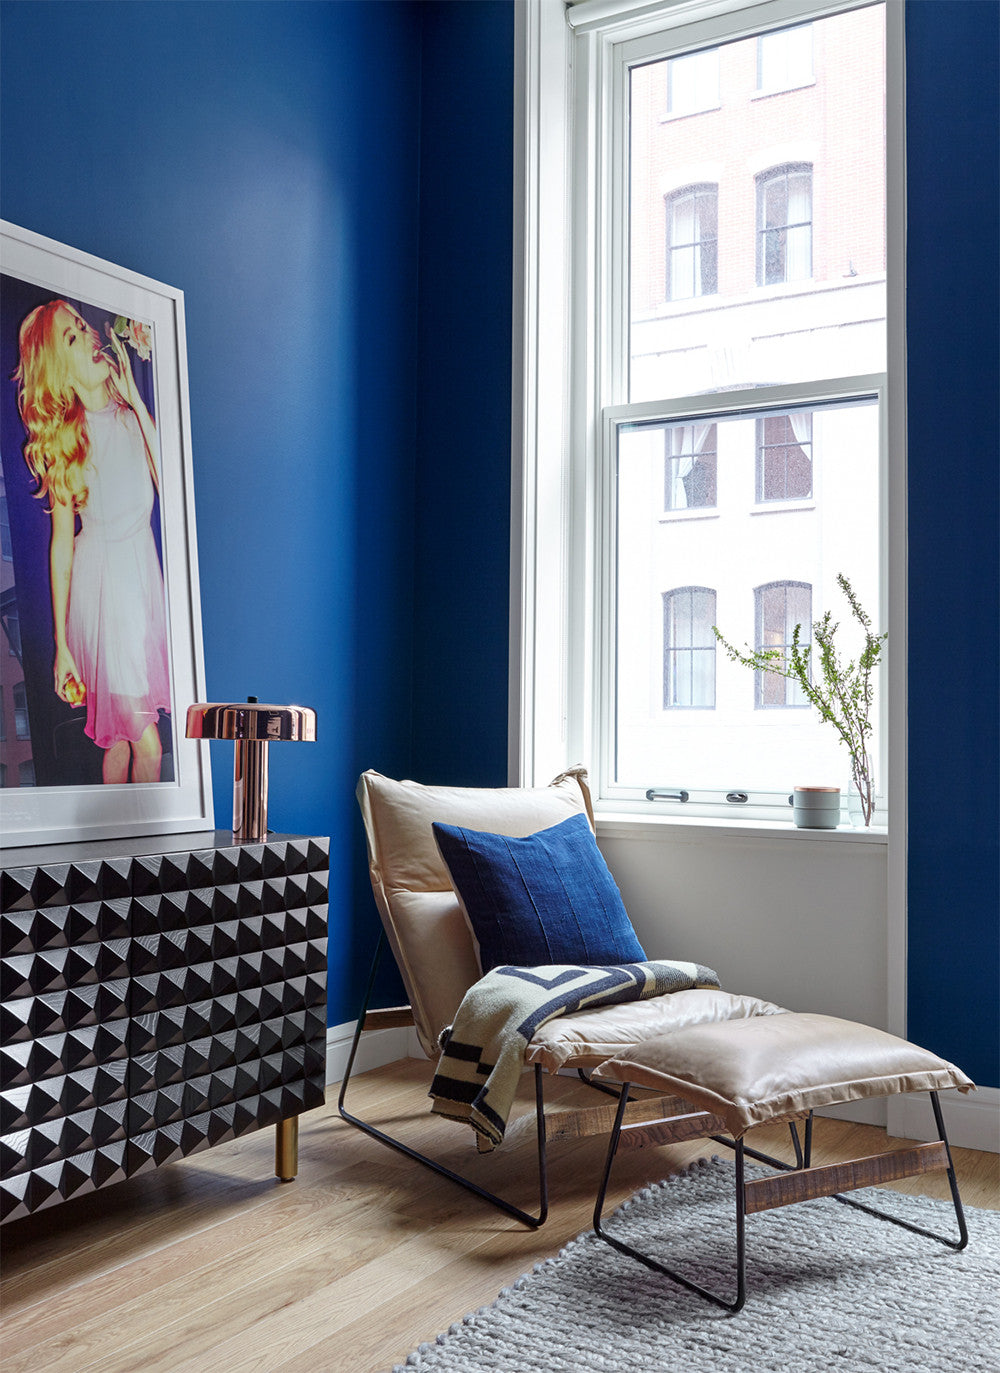 Peek-a-blue     Interior Design by Consort. Photo: Reid Rolls